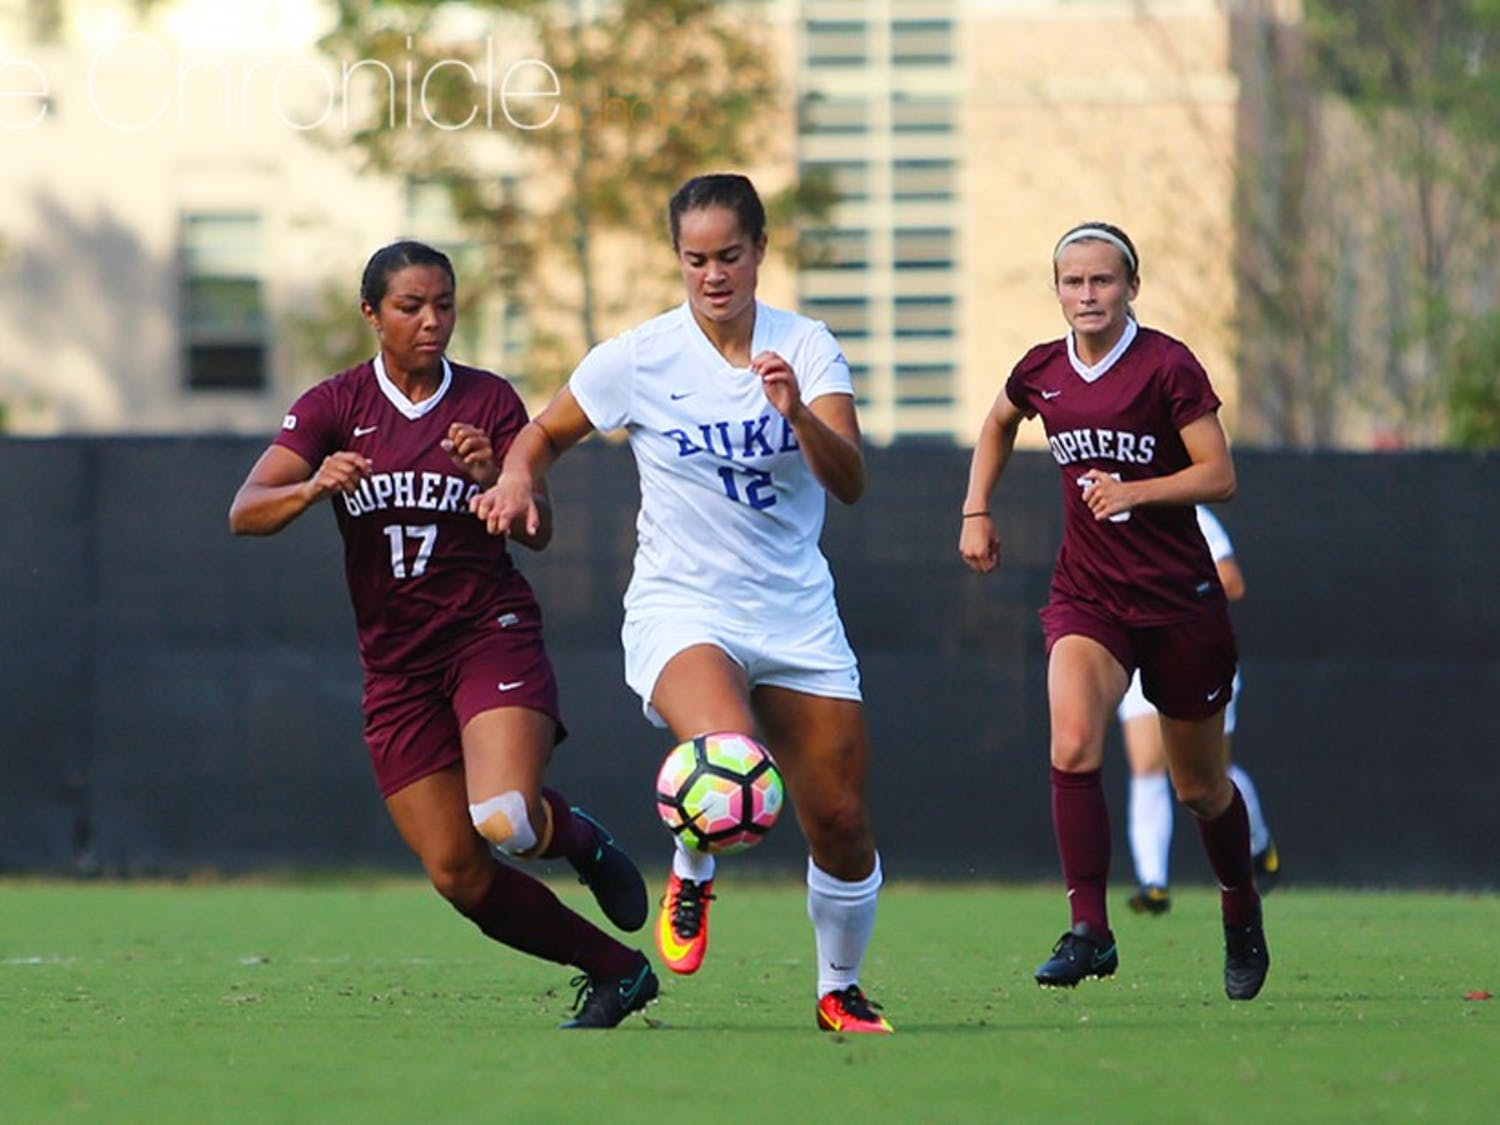 Kayla McCoy and Duke's forwards will look to capitalize on offensive chances against an equally potent West Virginia side.